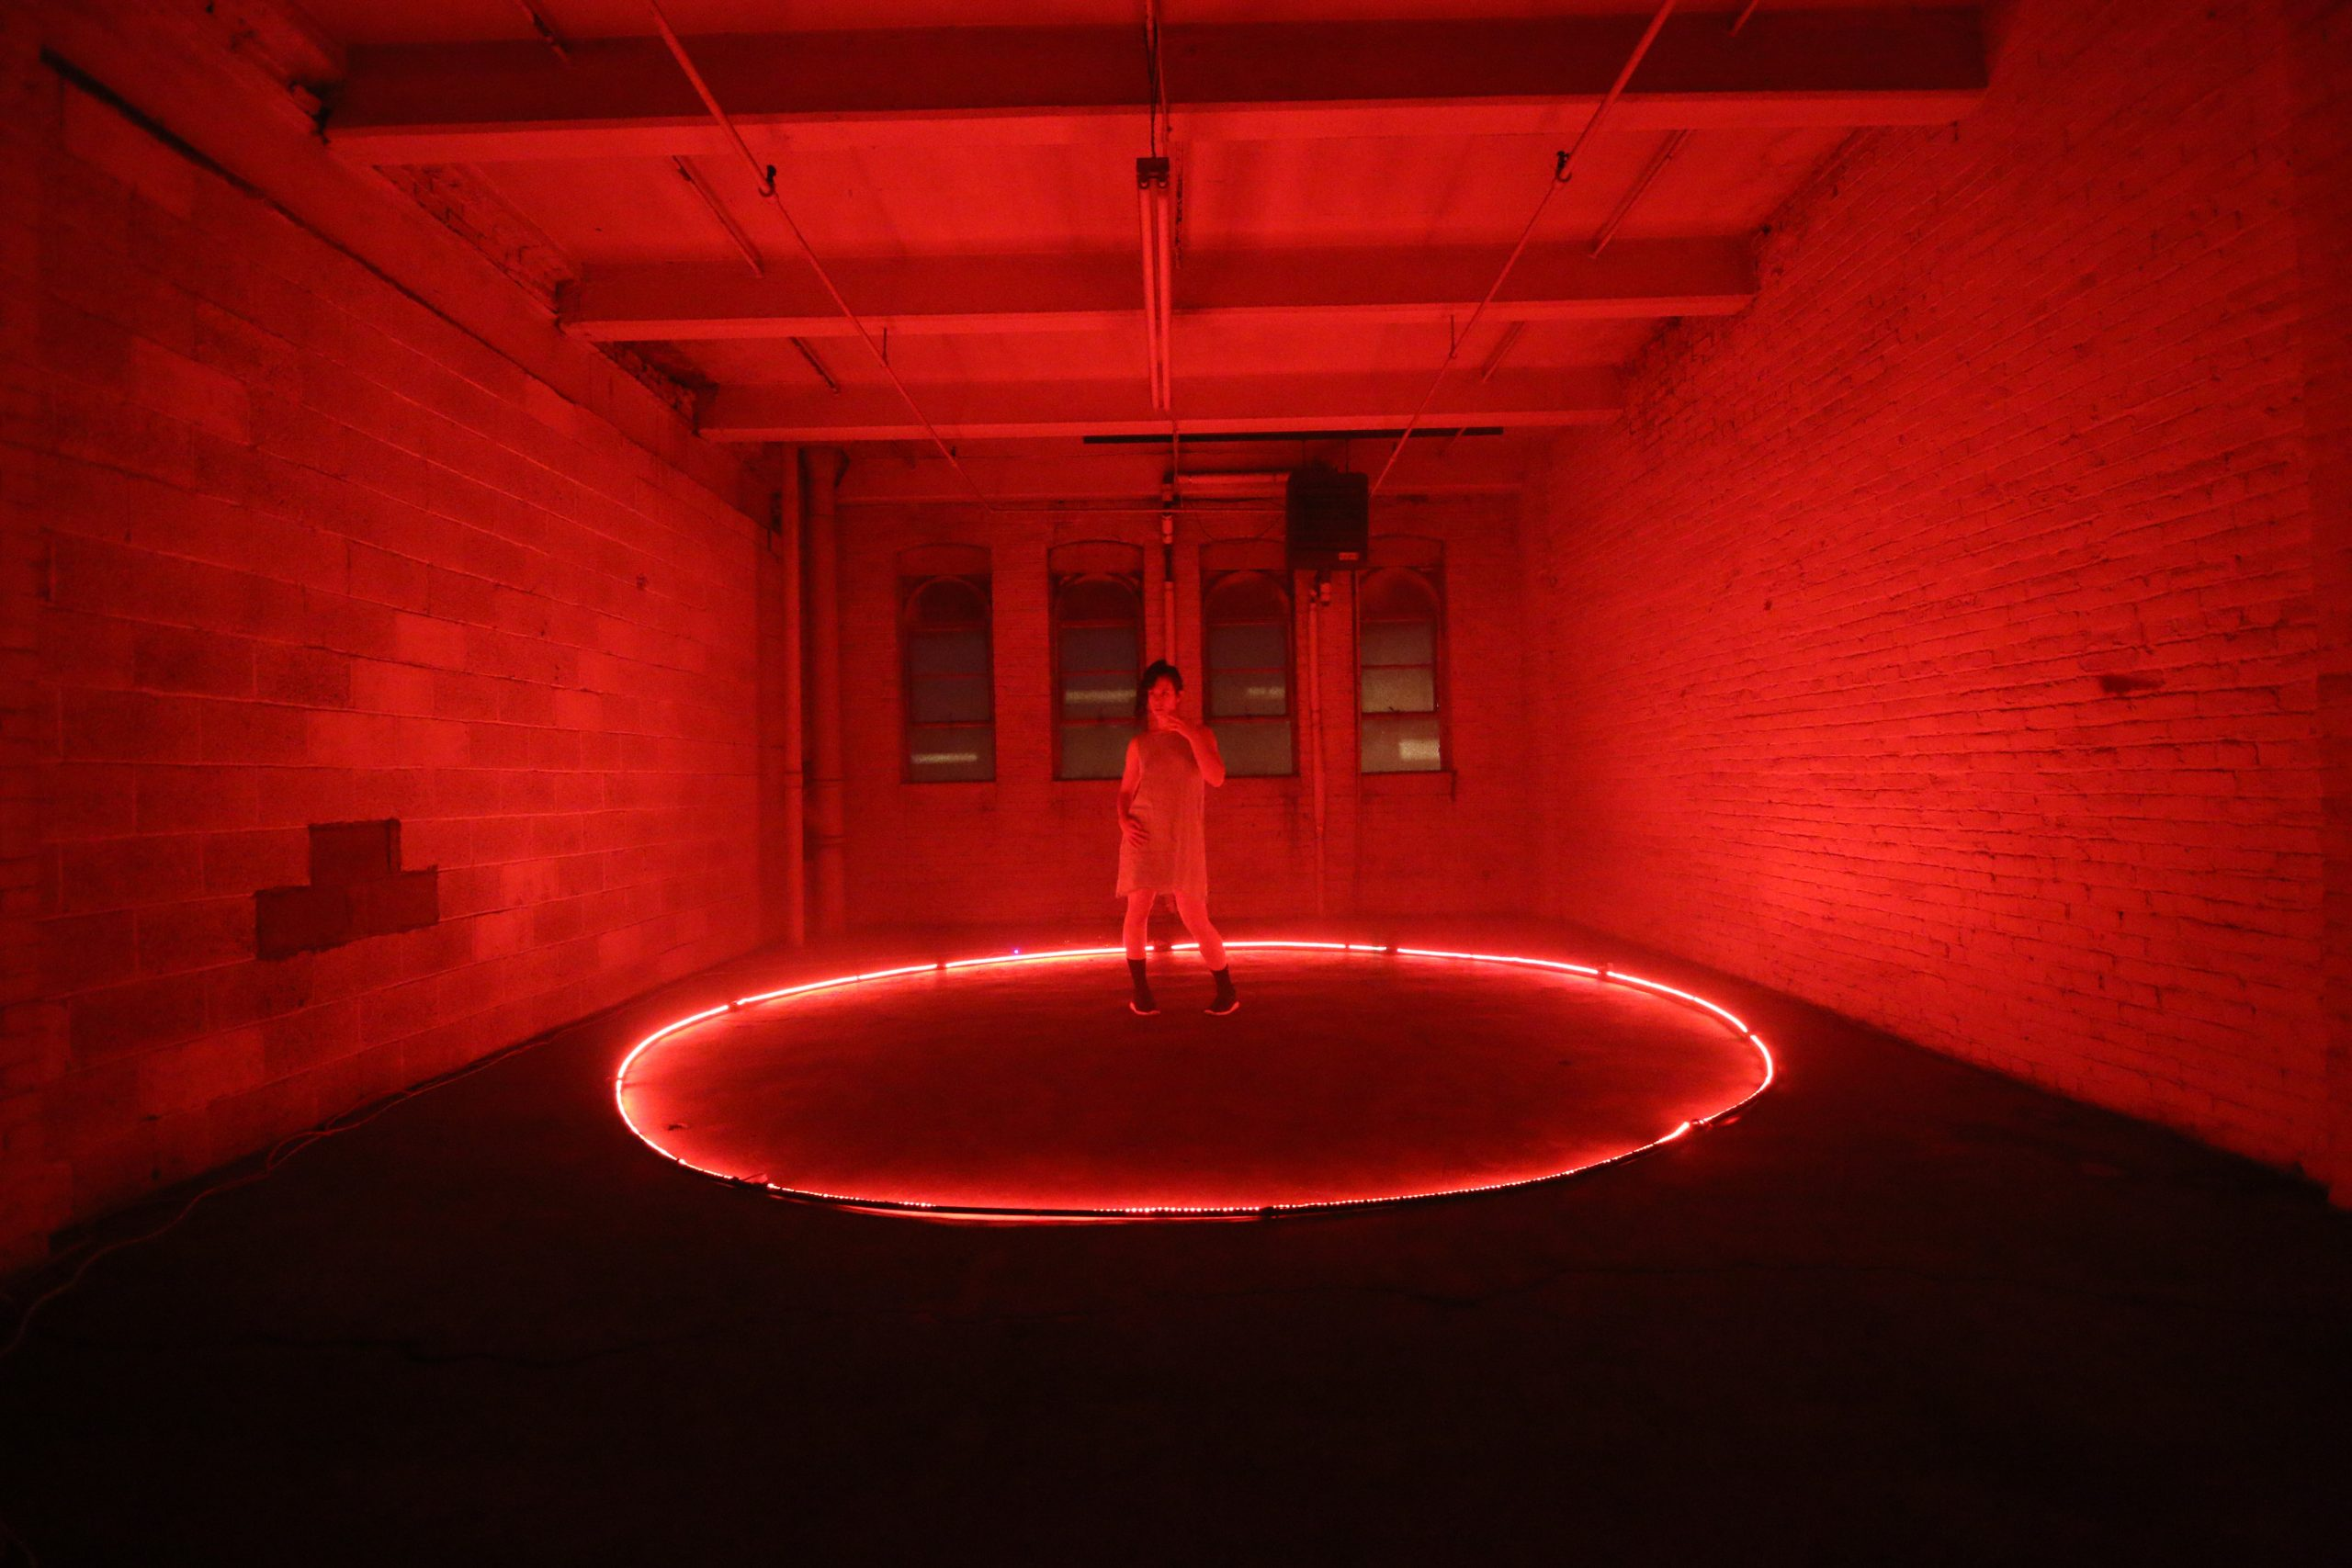 large light ring projectileobjects game lighting photography cinematography